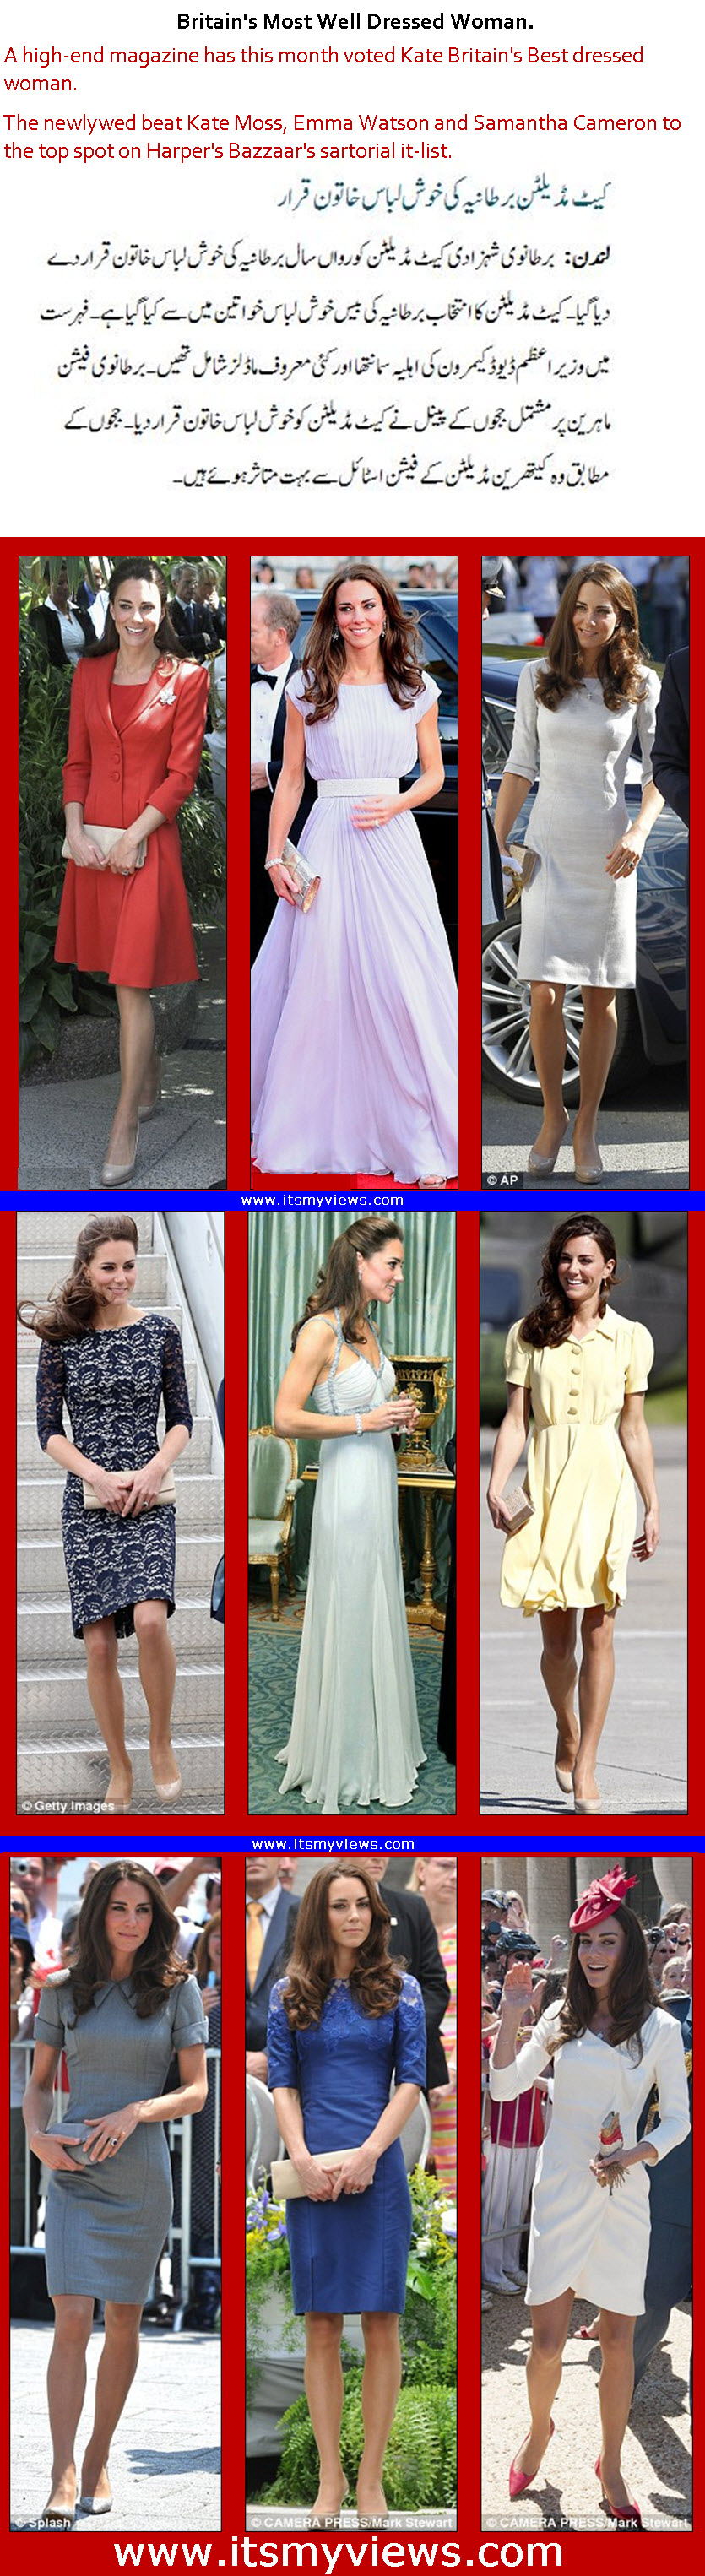 Kate-Middleton-Britain-Most-well-Dressed-woman.jpg